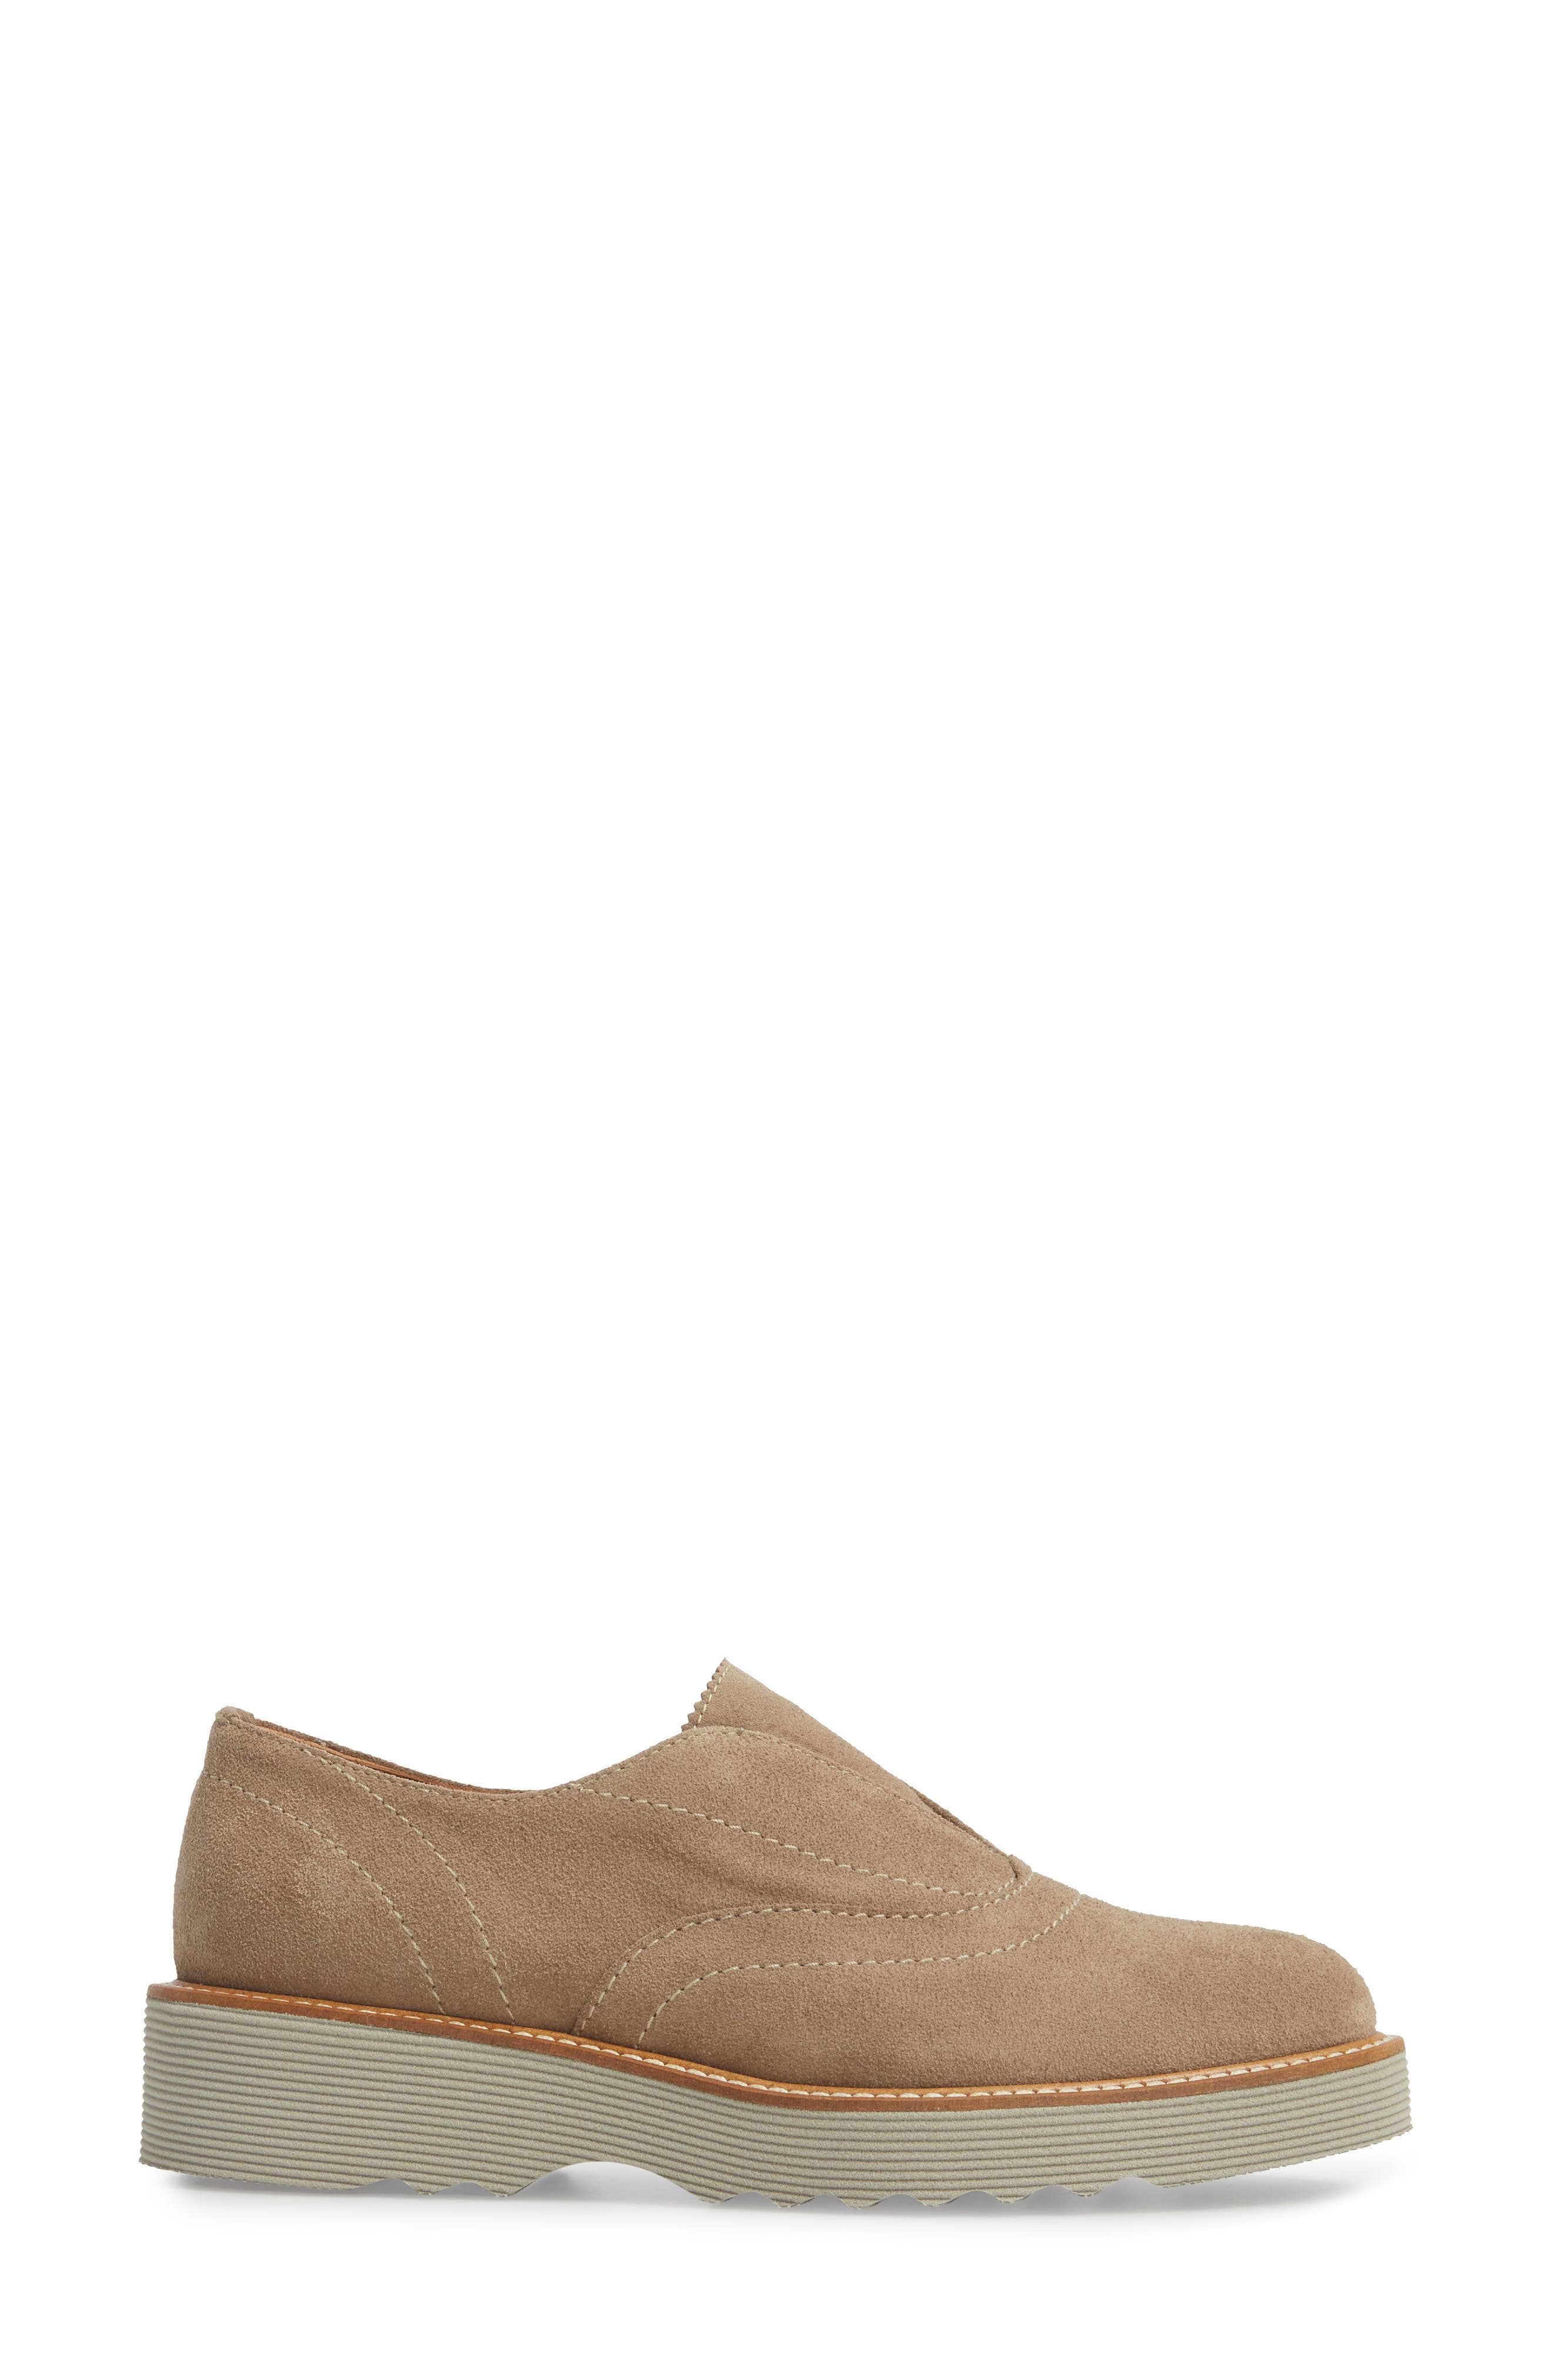 Kaleigh Weatherproof Loafer,                             Alternate thumbnail 3, color,                             Taupe